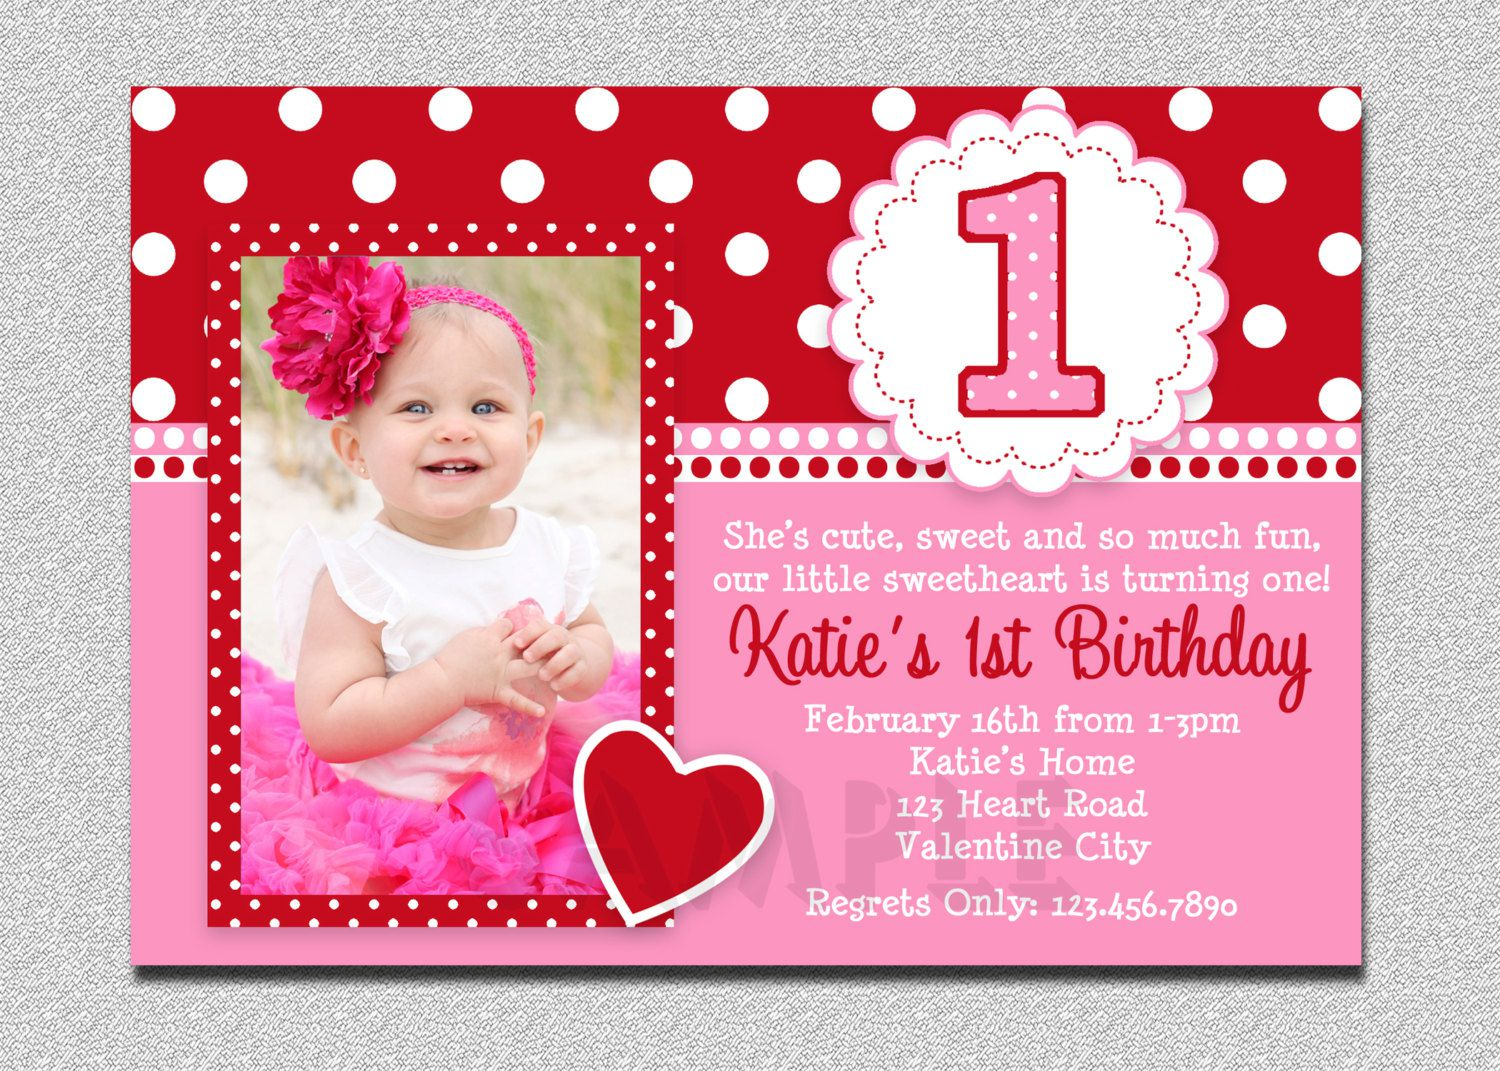 Examples Of Email Birthday Invitations